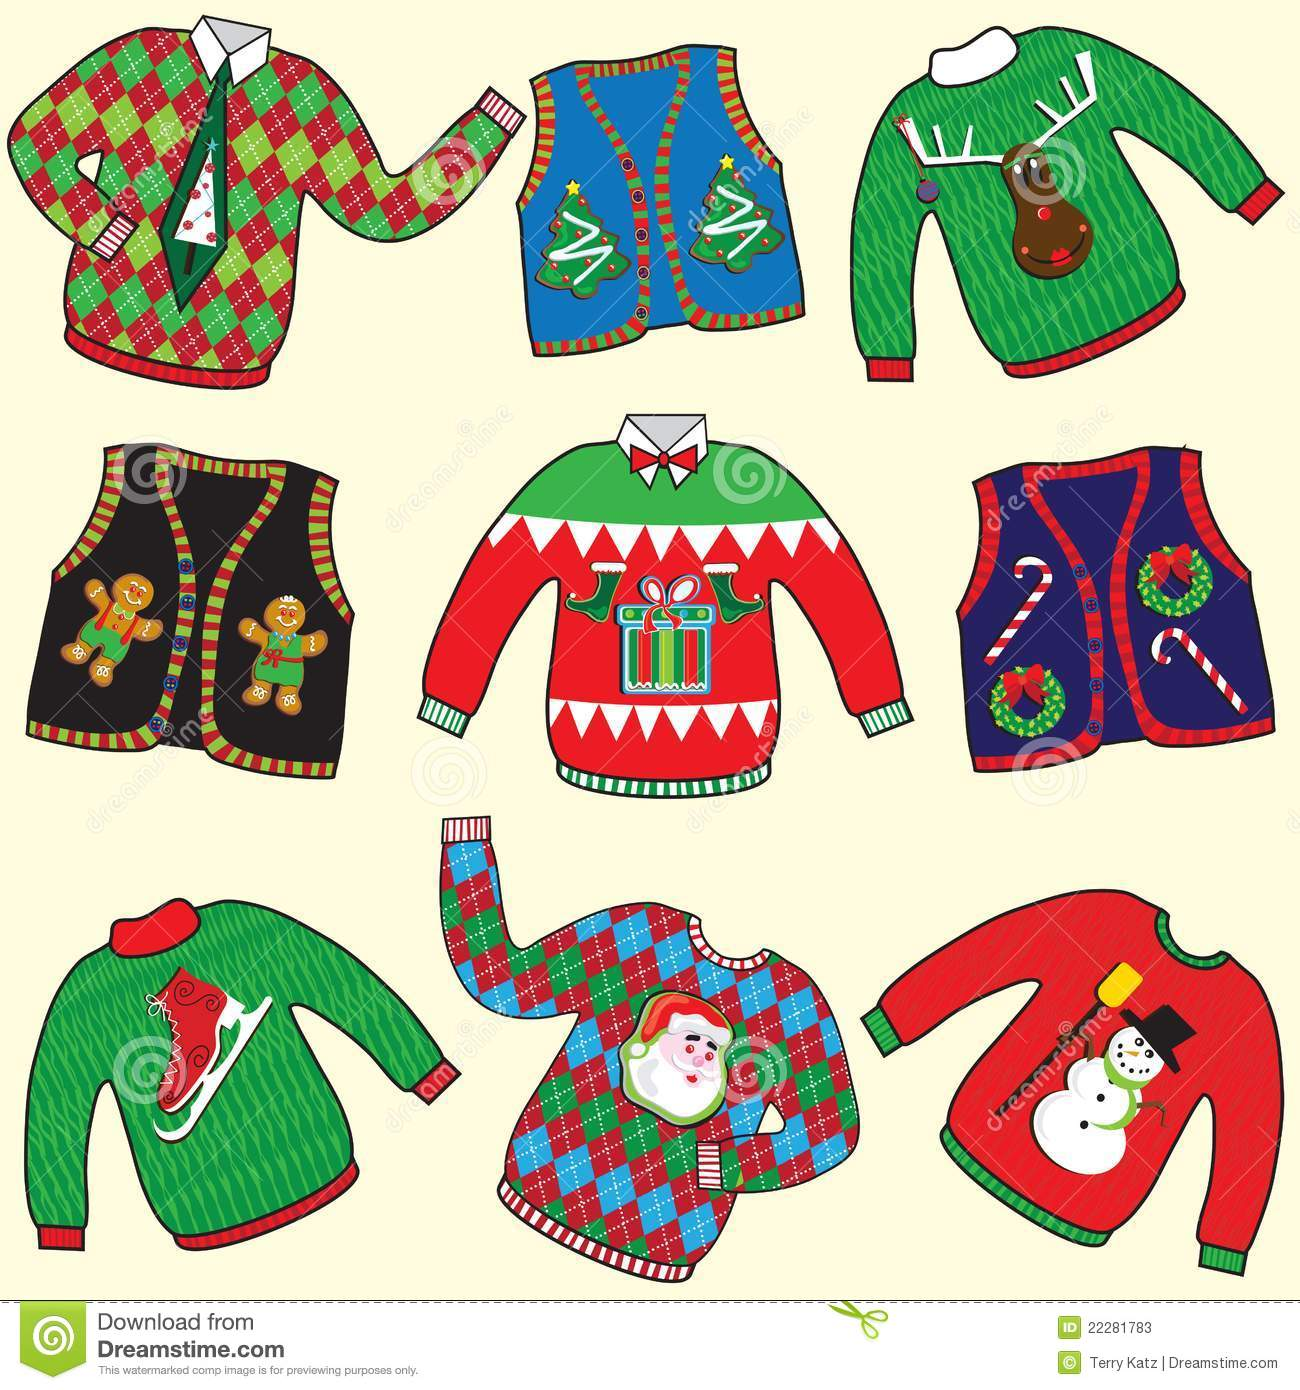 f170dc775 Dare to wear ugly Christmas sweaters and vests clipart. Designers Also  Selected These Stock Illustrations